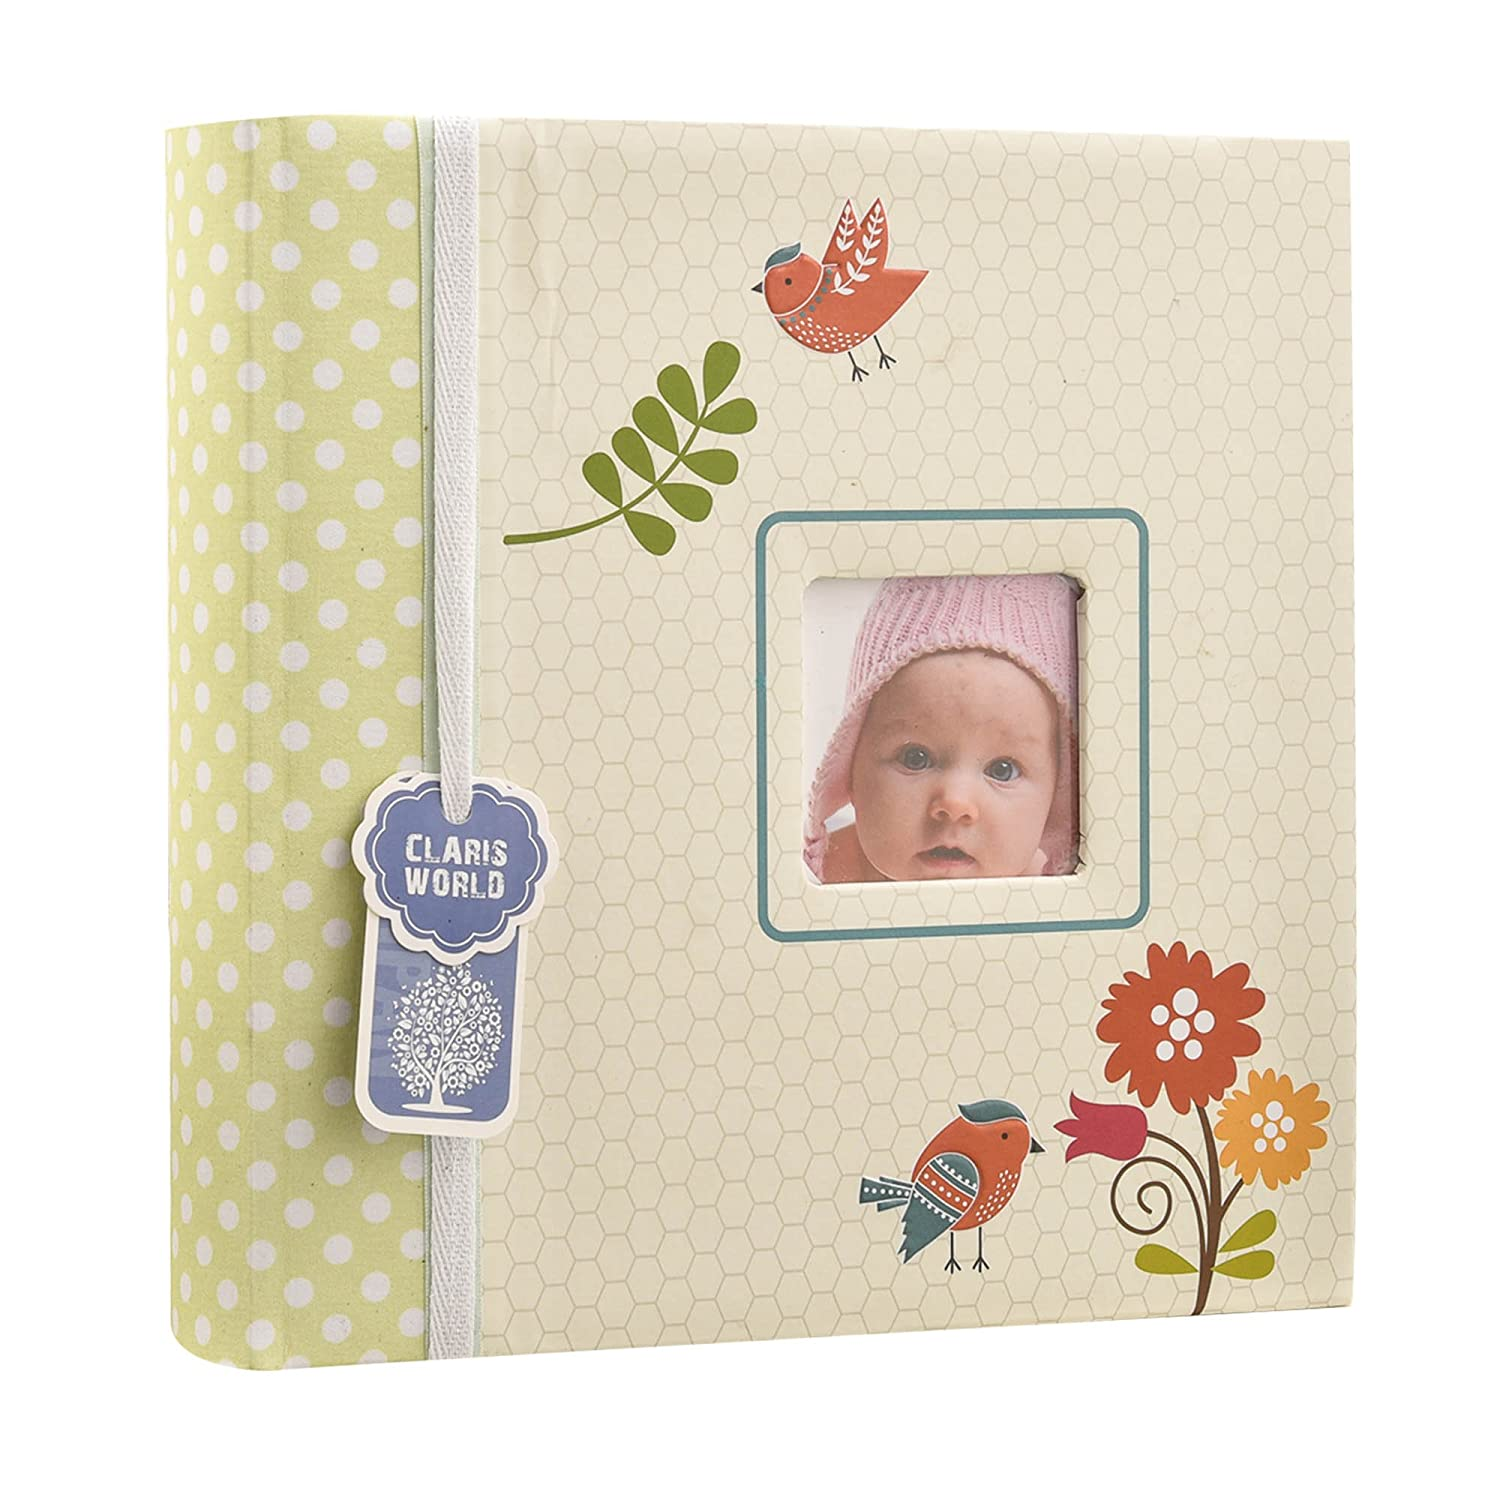 Baby Boy Blue Slip In Case Memo Photo Album 4 x 6'' For 200 Photos - Woodland Animals - Ideal Gift (Blue) ARPAN BA-1607